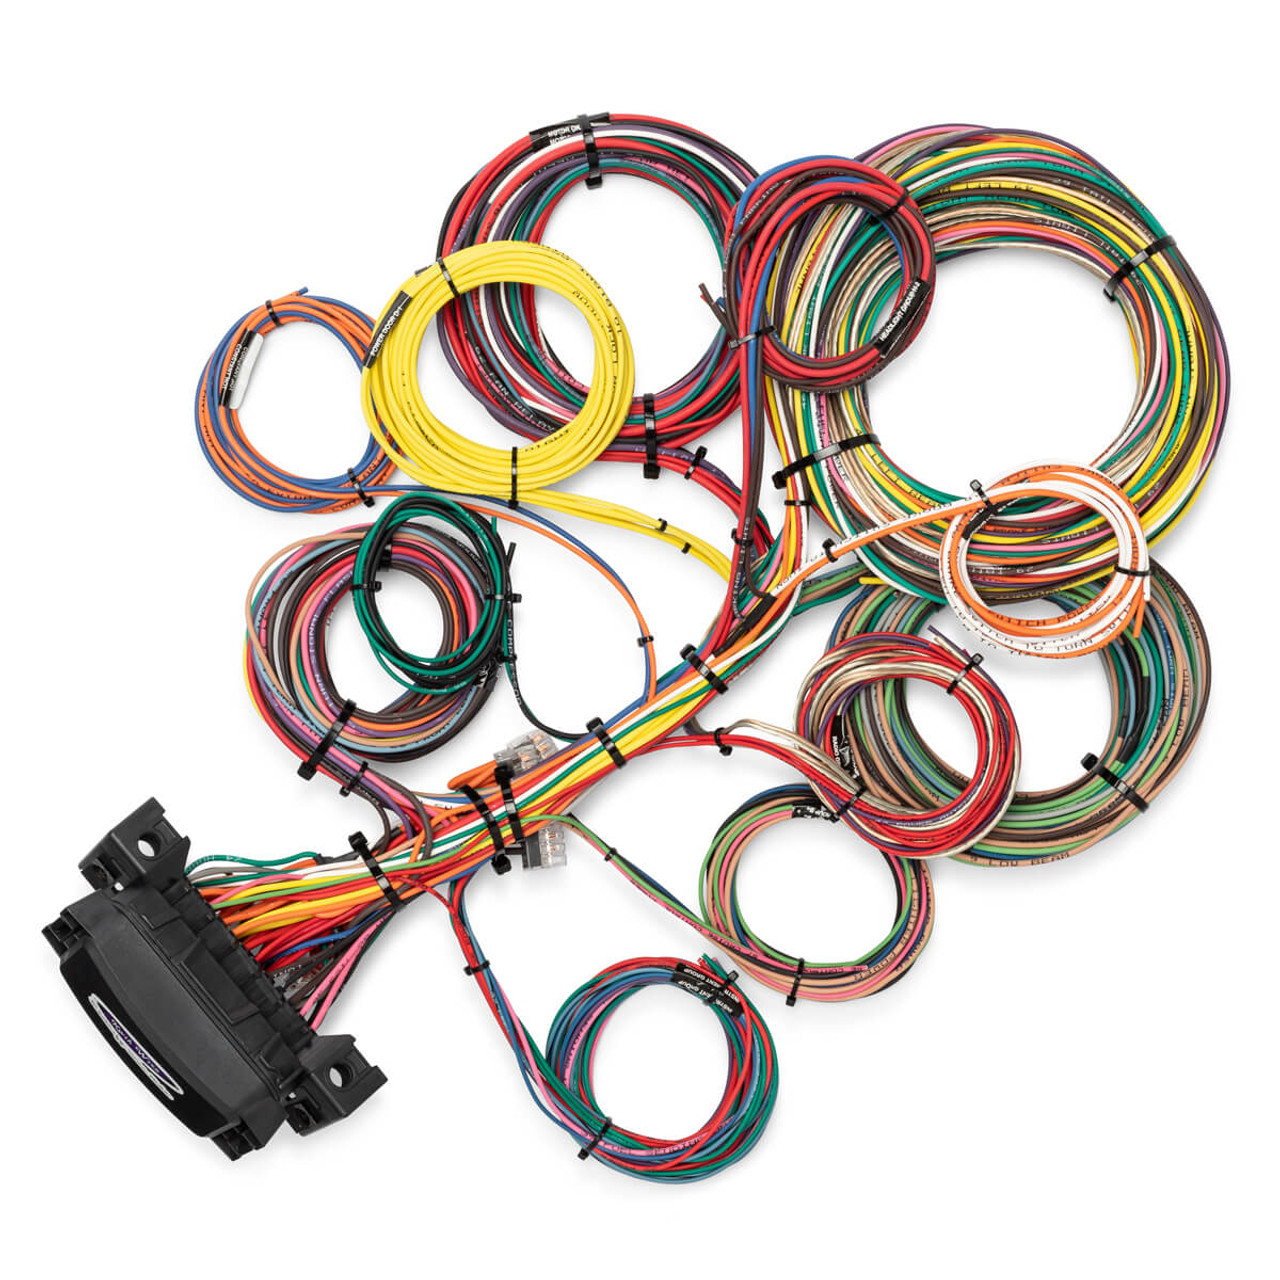 small resolution of 26 circuit waterproof wire harness kwikwire com electrify your ride electrical wire harness design basics electrical wire harness